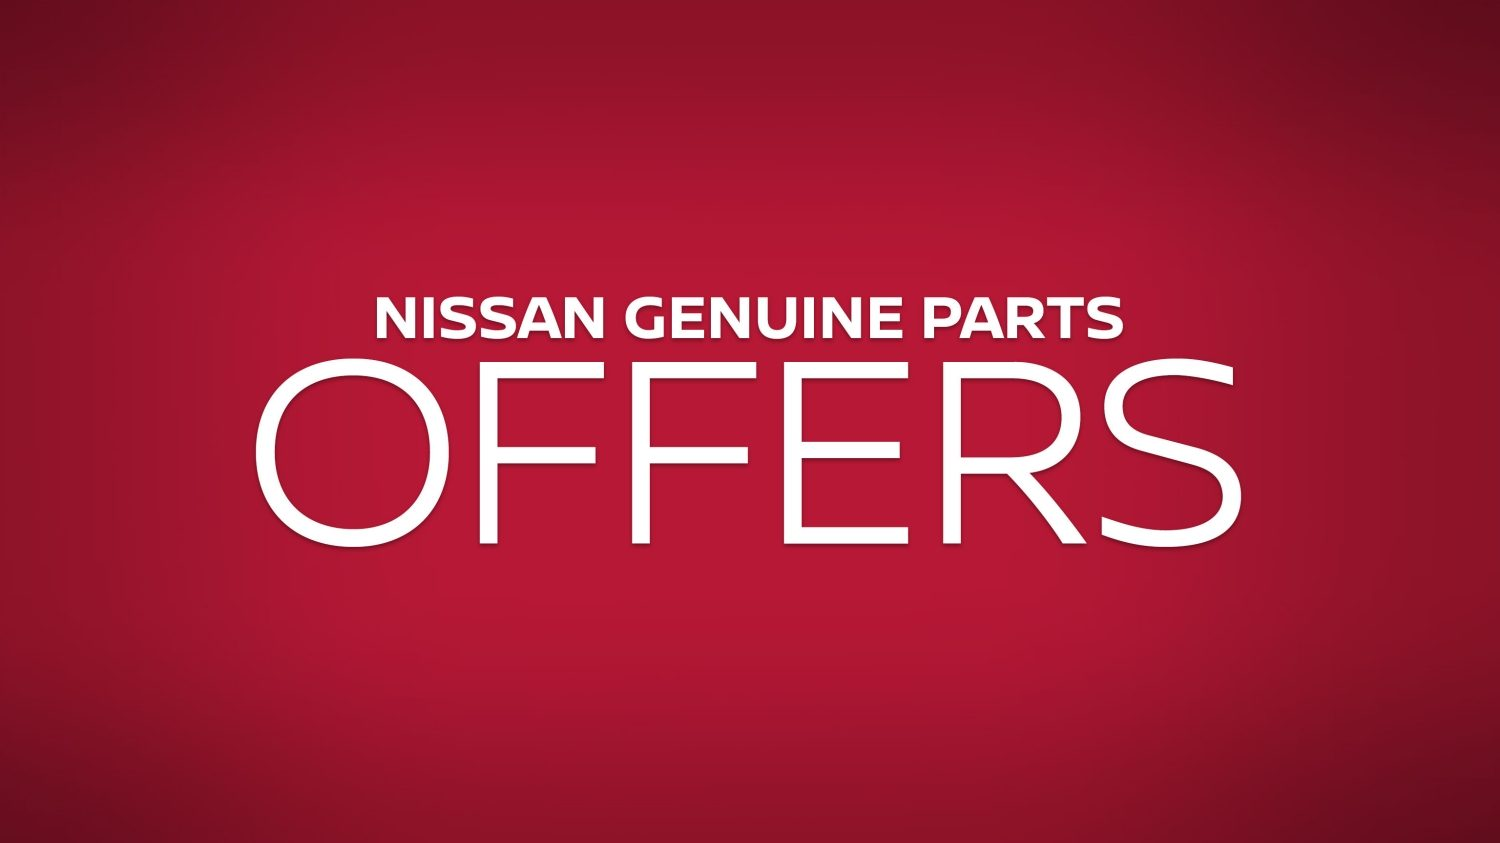 Genuine parts offers